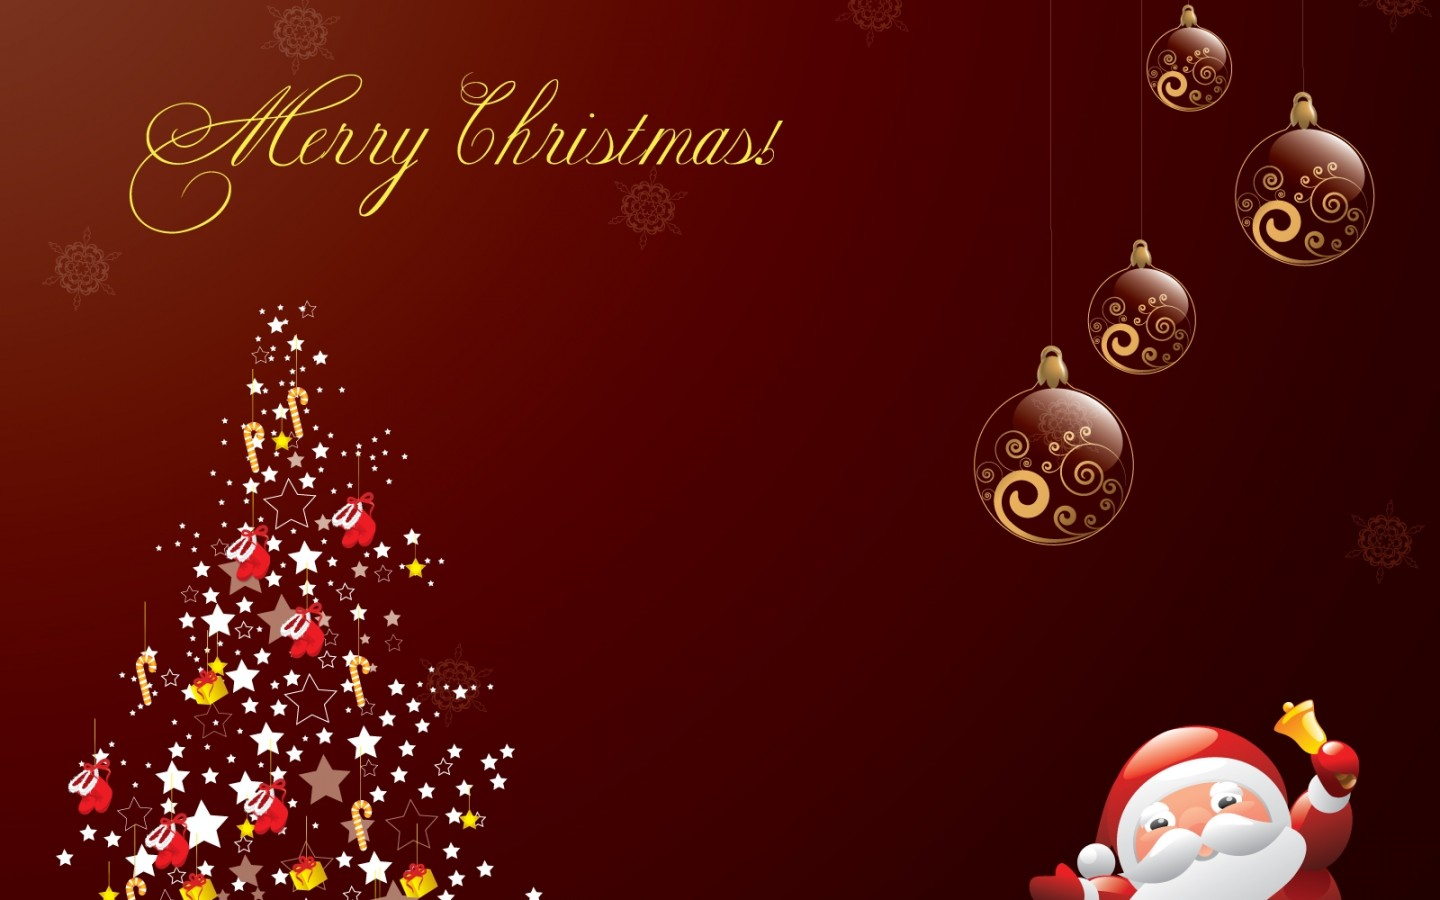 christmas wallpapers 1440 x - photo #11